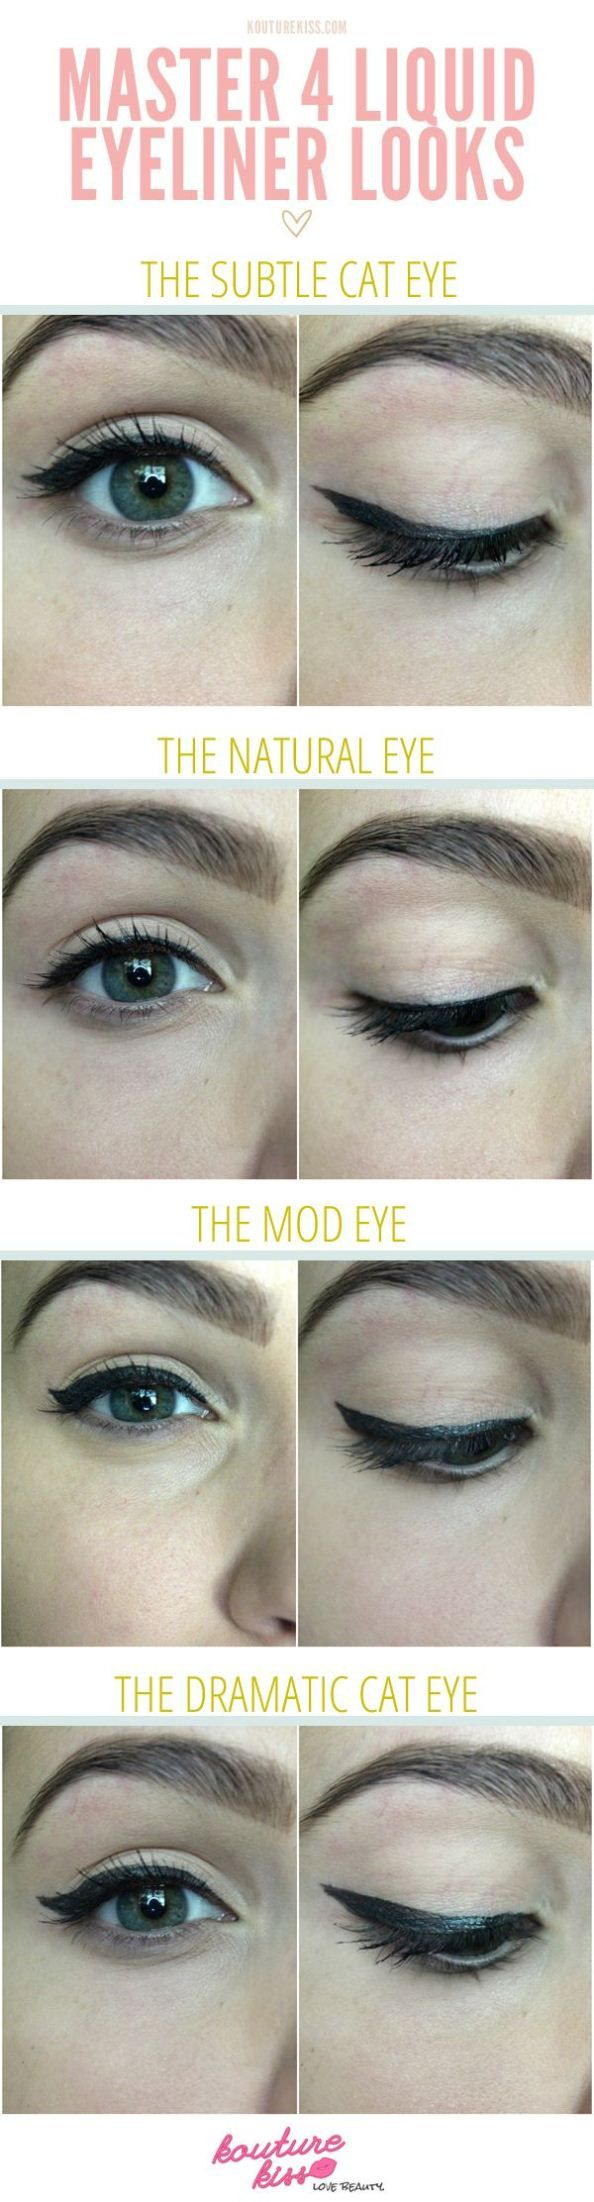 #RoundUp --> 20 Liquid Eyeliner Hacks, Tips and Tricks For The Perfect Cat-Eye (And More)